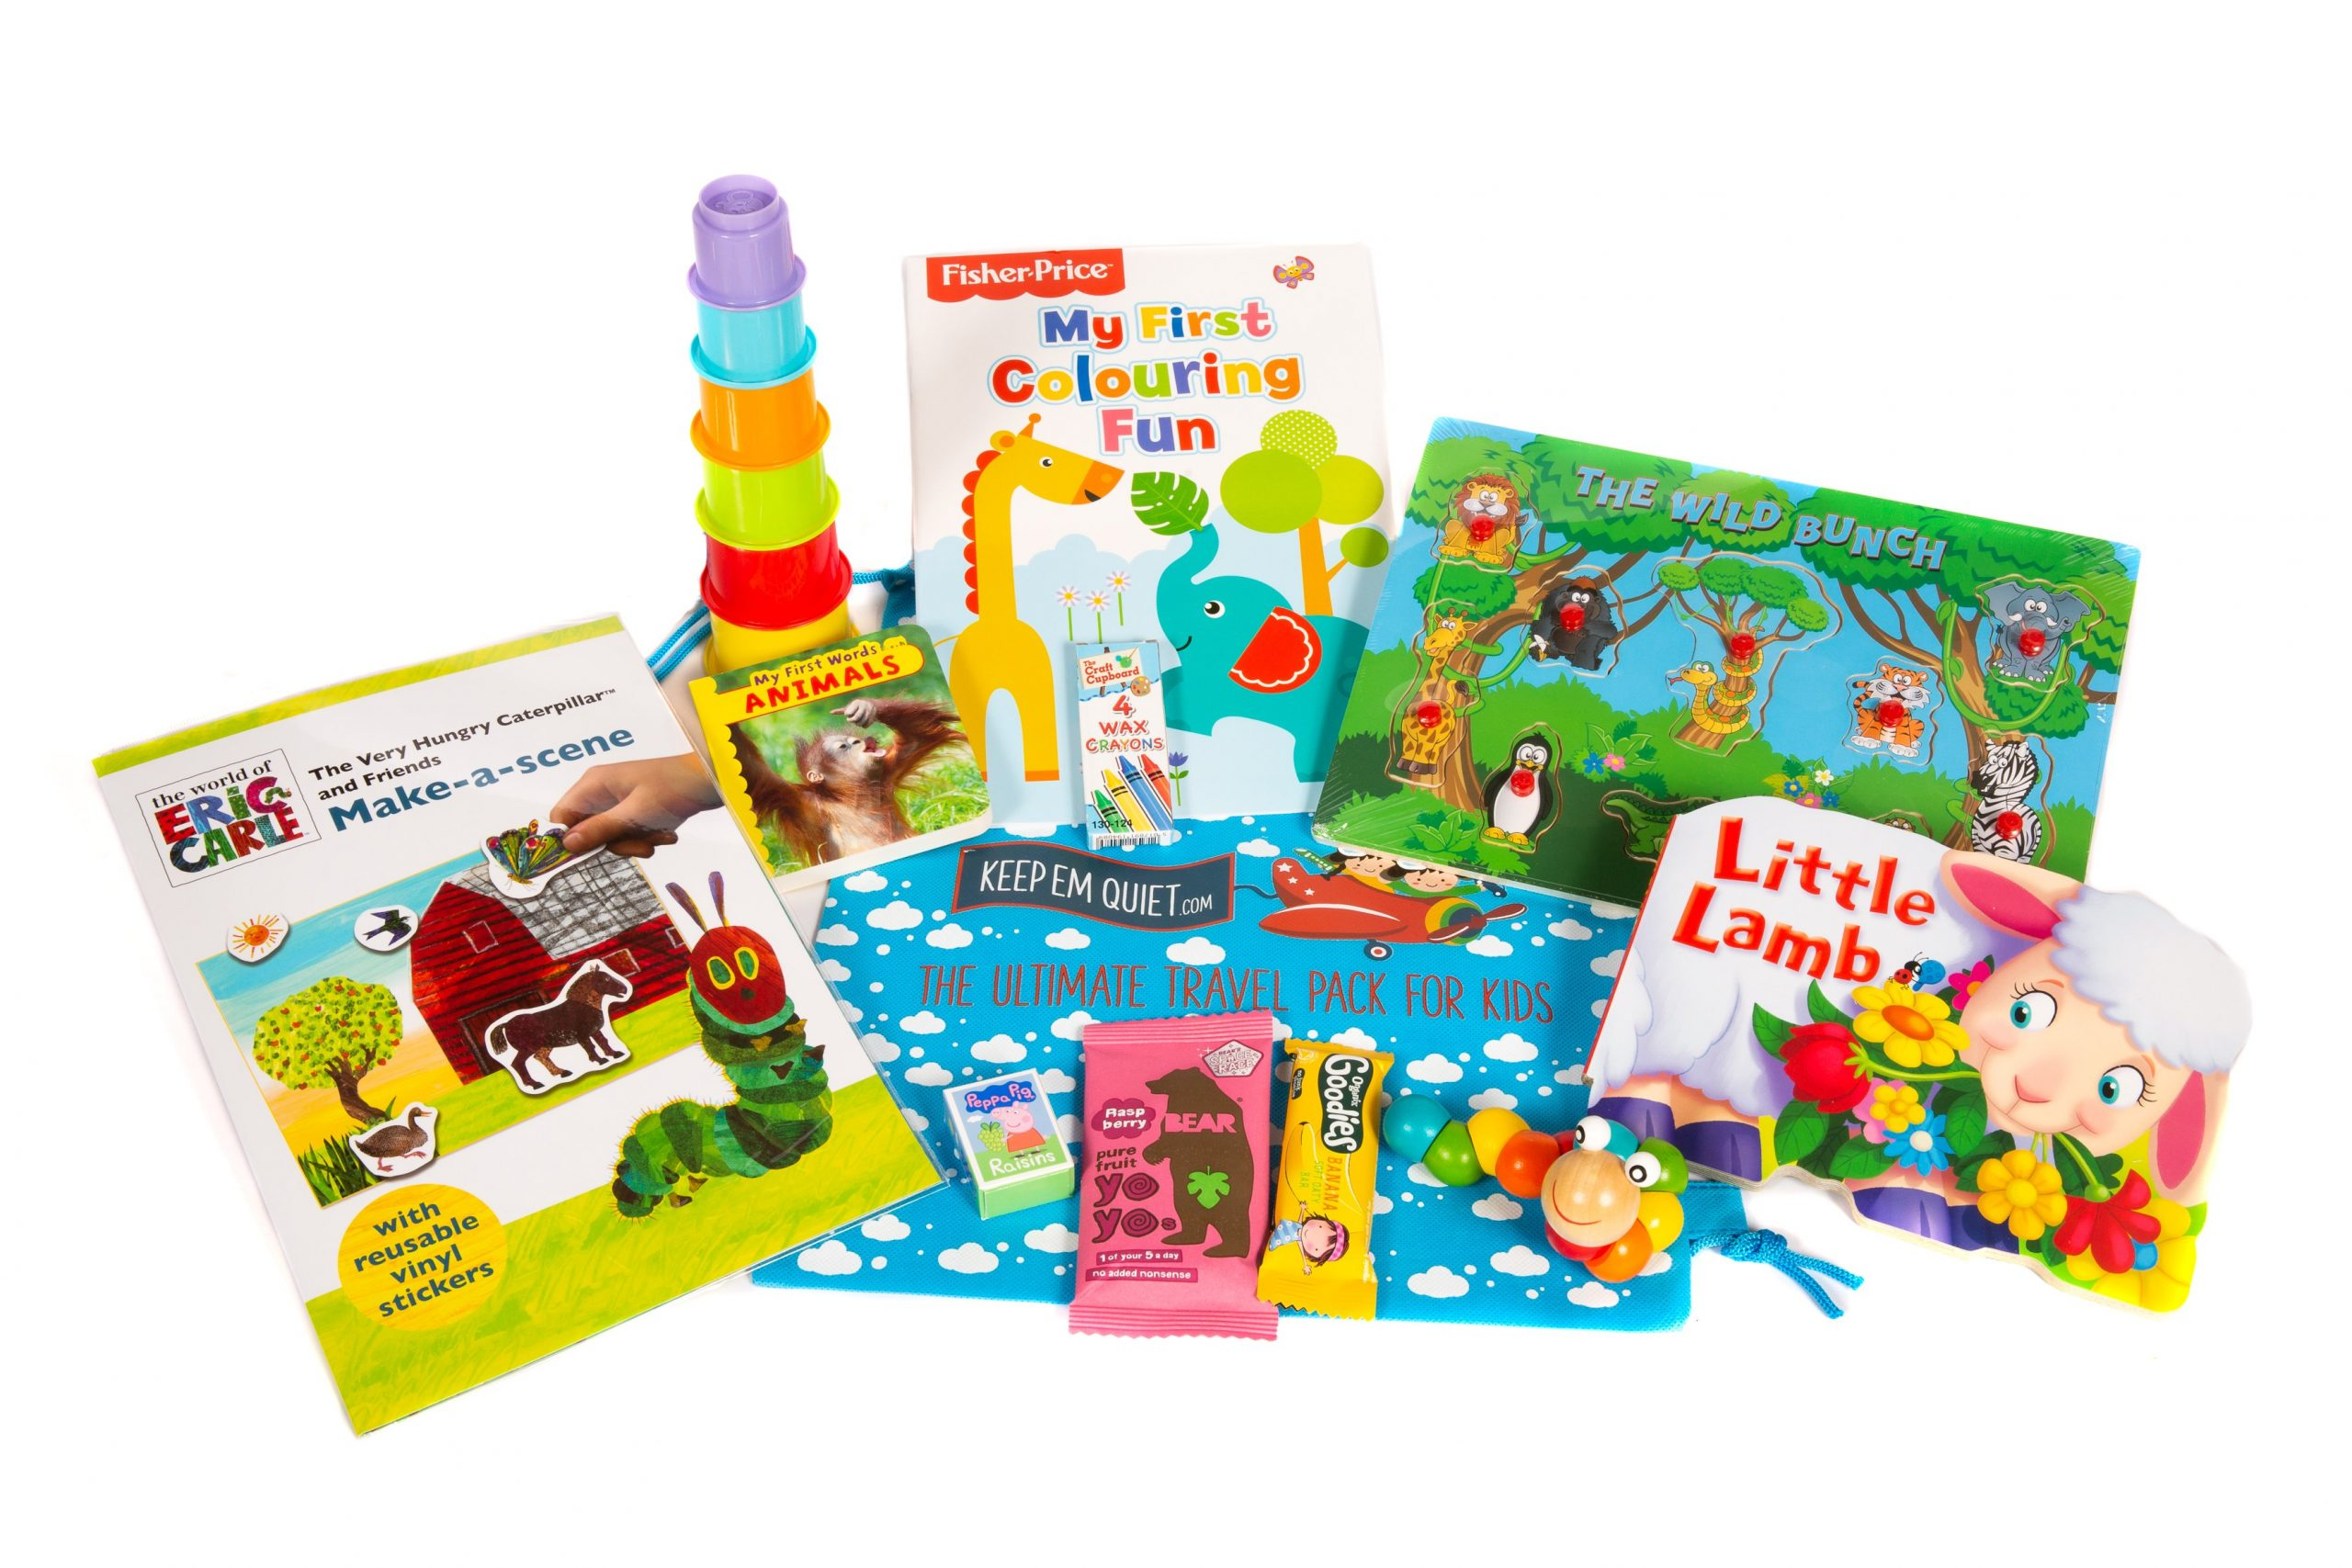 Keep em quiet child travel entertainment kit